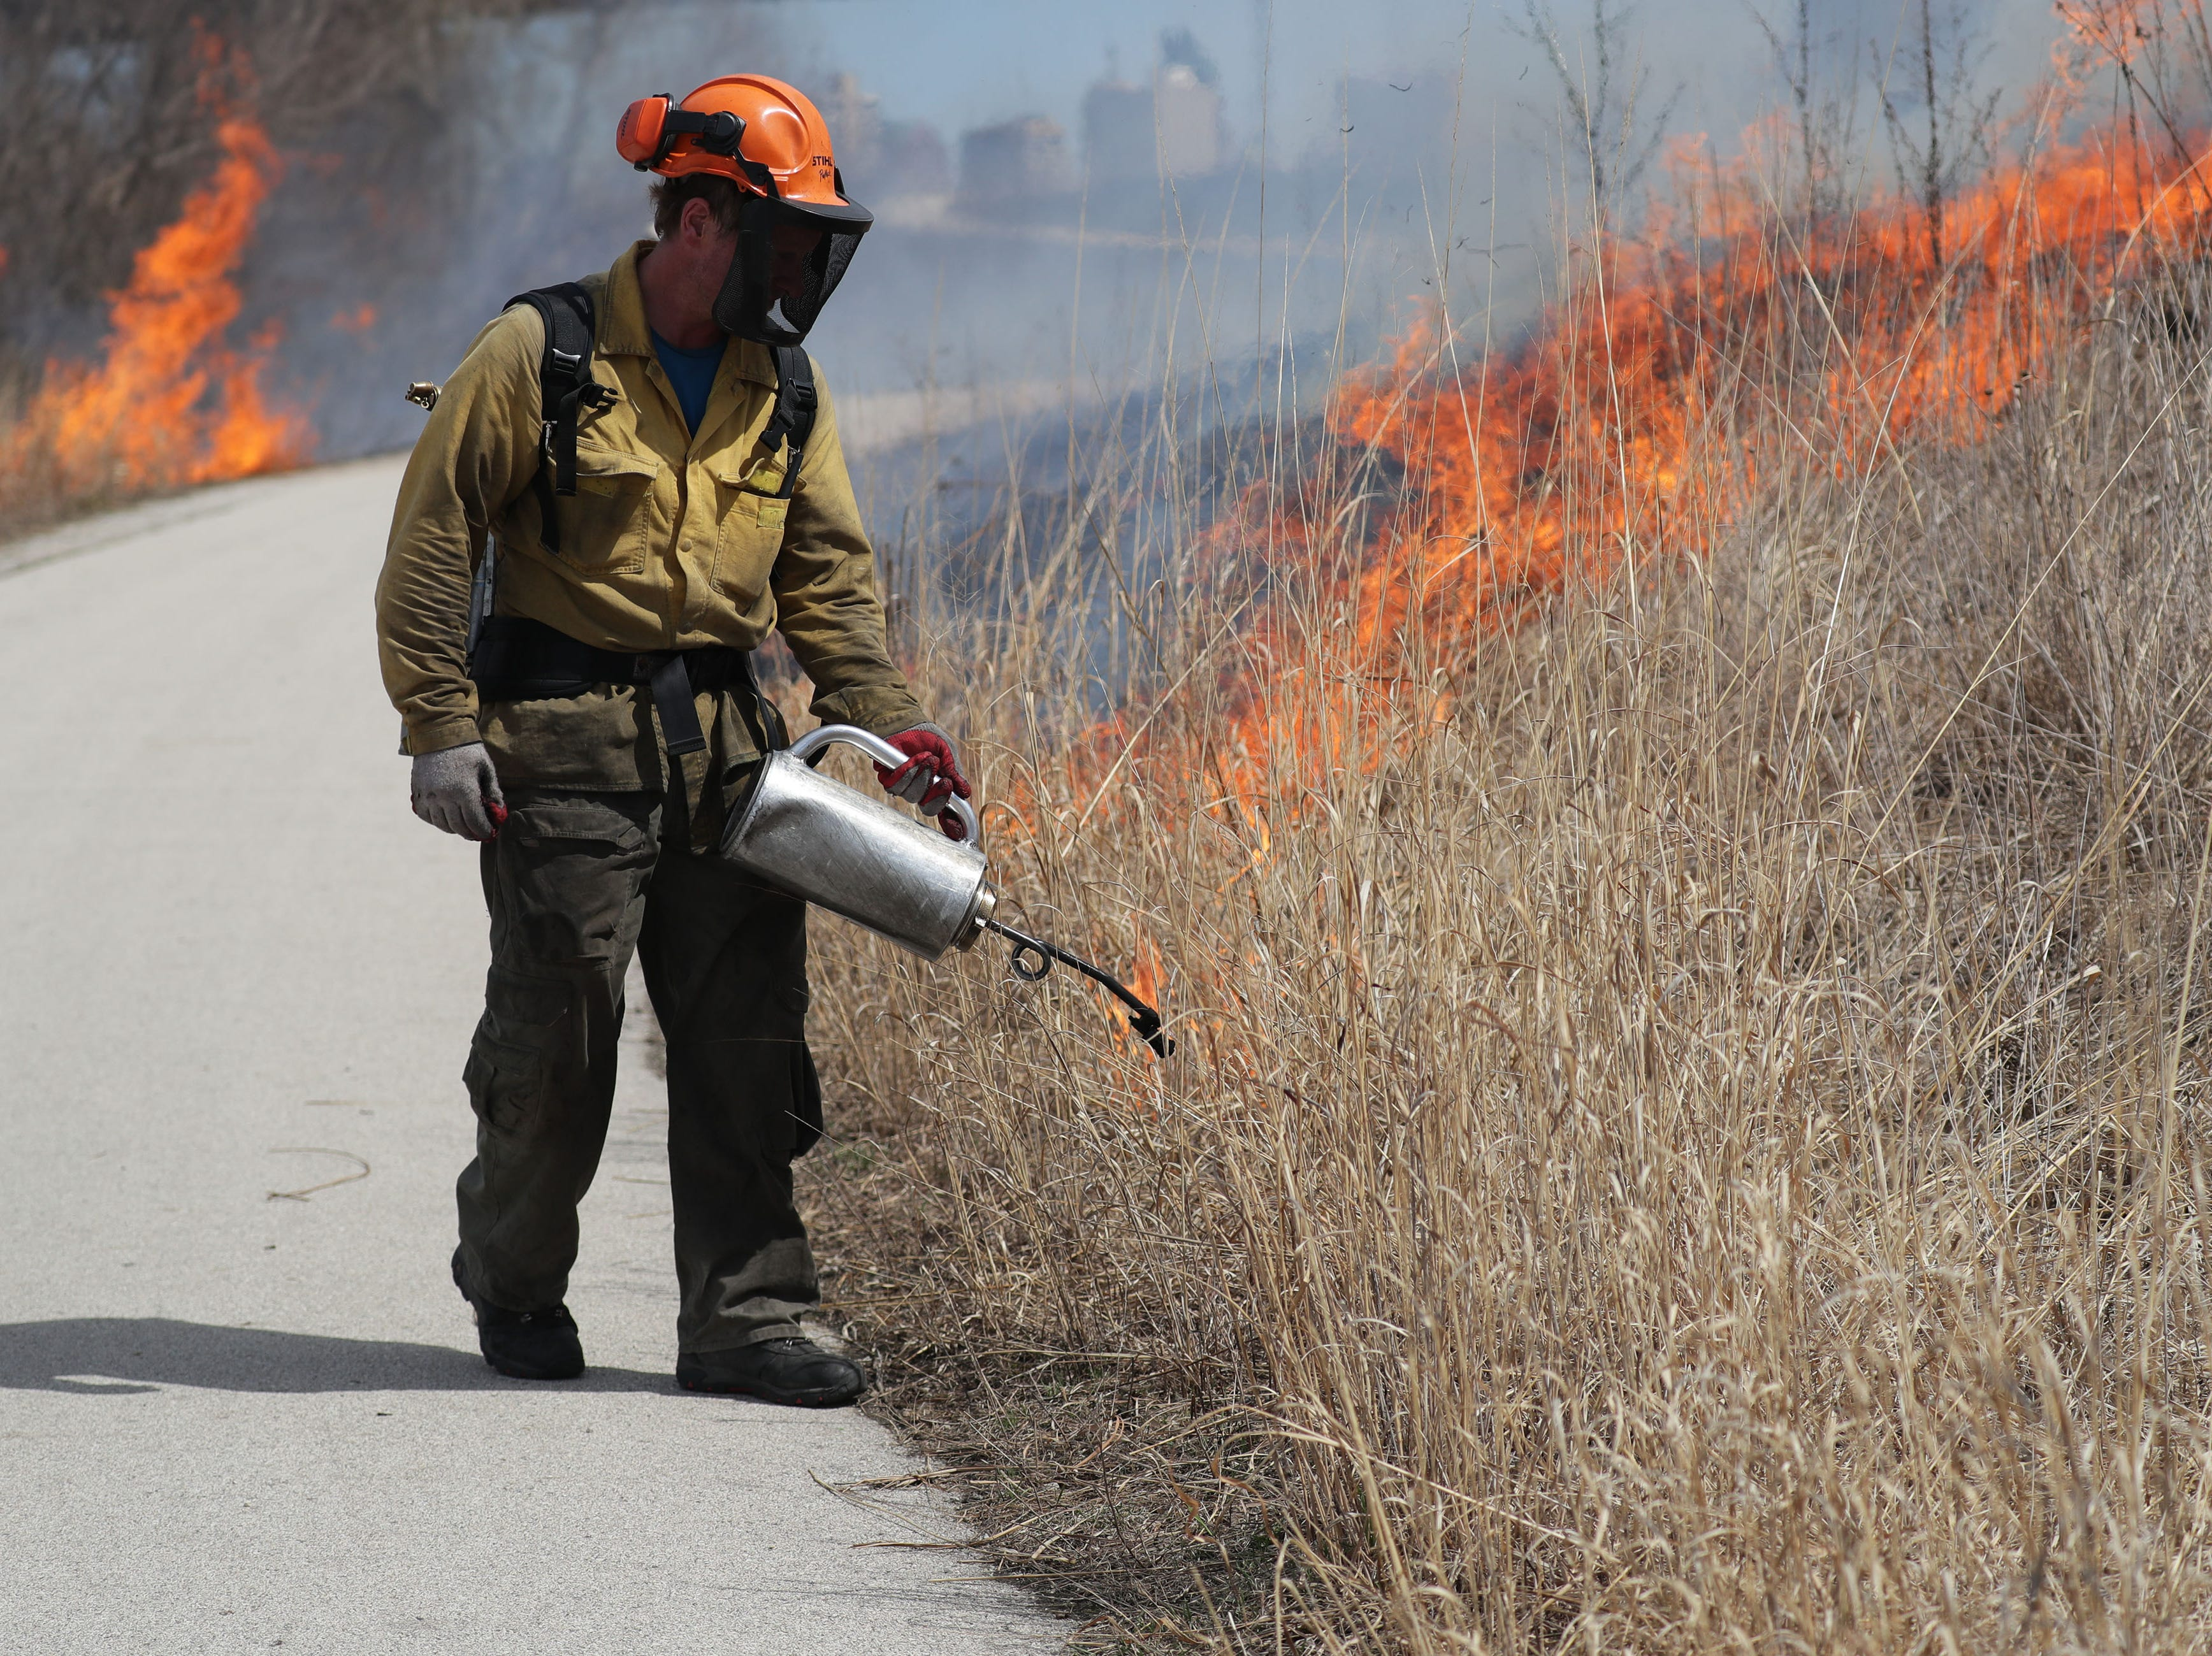 Chris Mann with Kettle Moraine Land Stewards uses a drip torch to conduct the controlled burn.